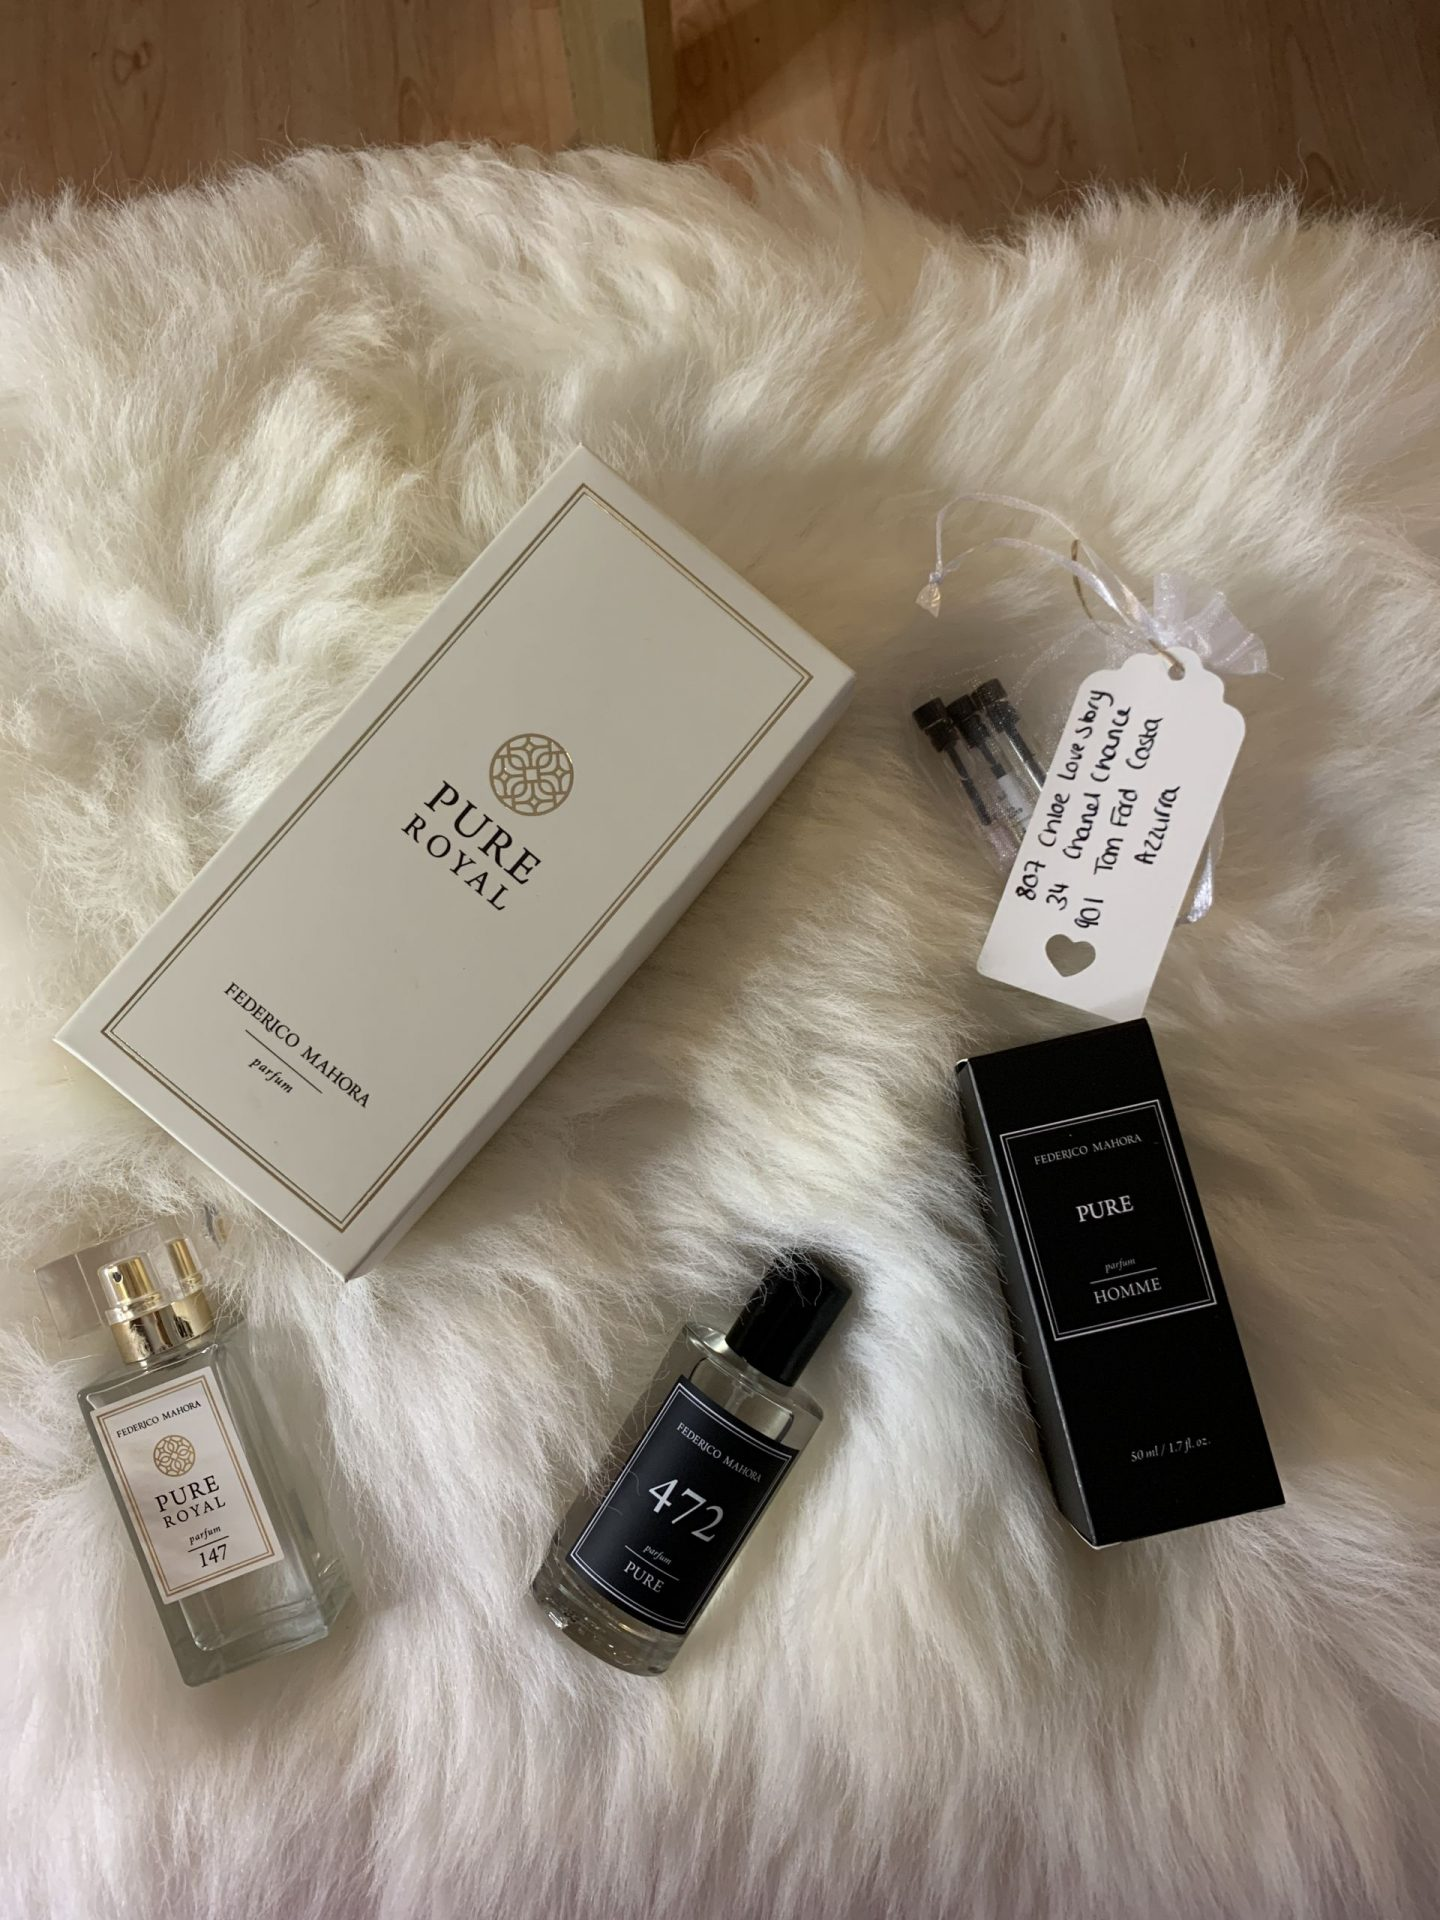 Pips Perfume High End Perfume Dupe